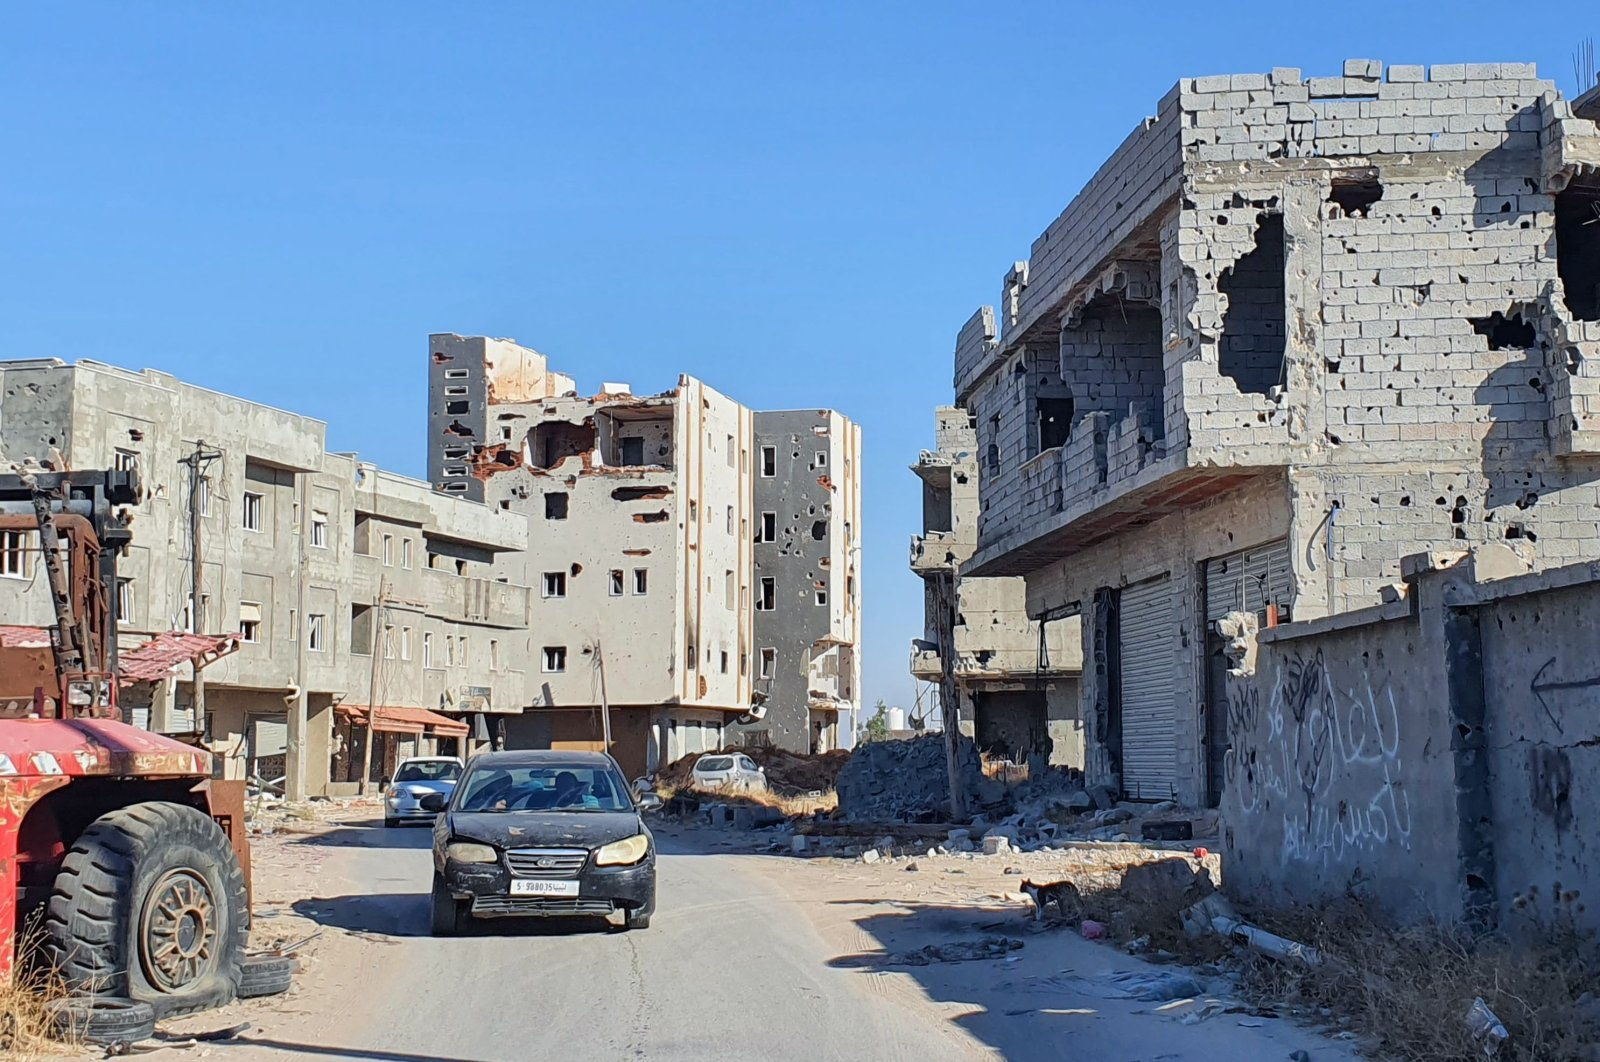 Cars advance on an empty road lined with damaged buildings in the Salaheddin district south of the Libyan capital Tripoli, as some residents return to the area after it was demined, June 21, 2020. (AFP Photo)